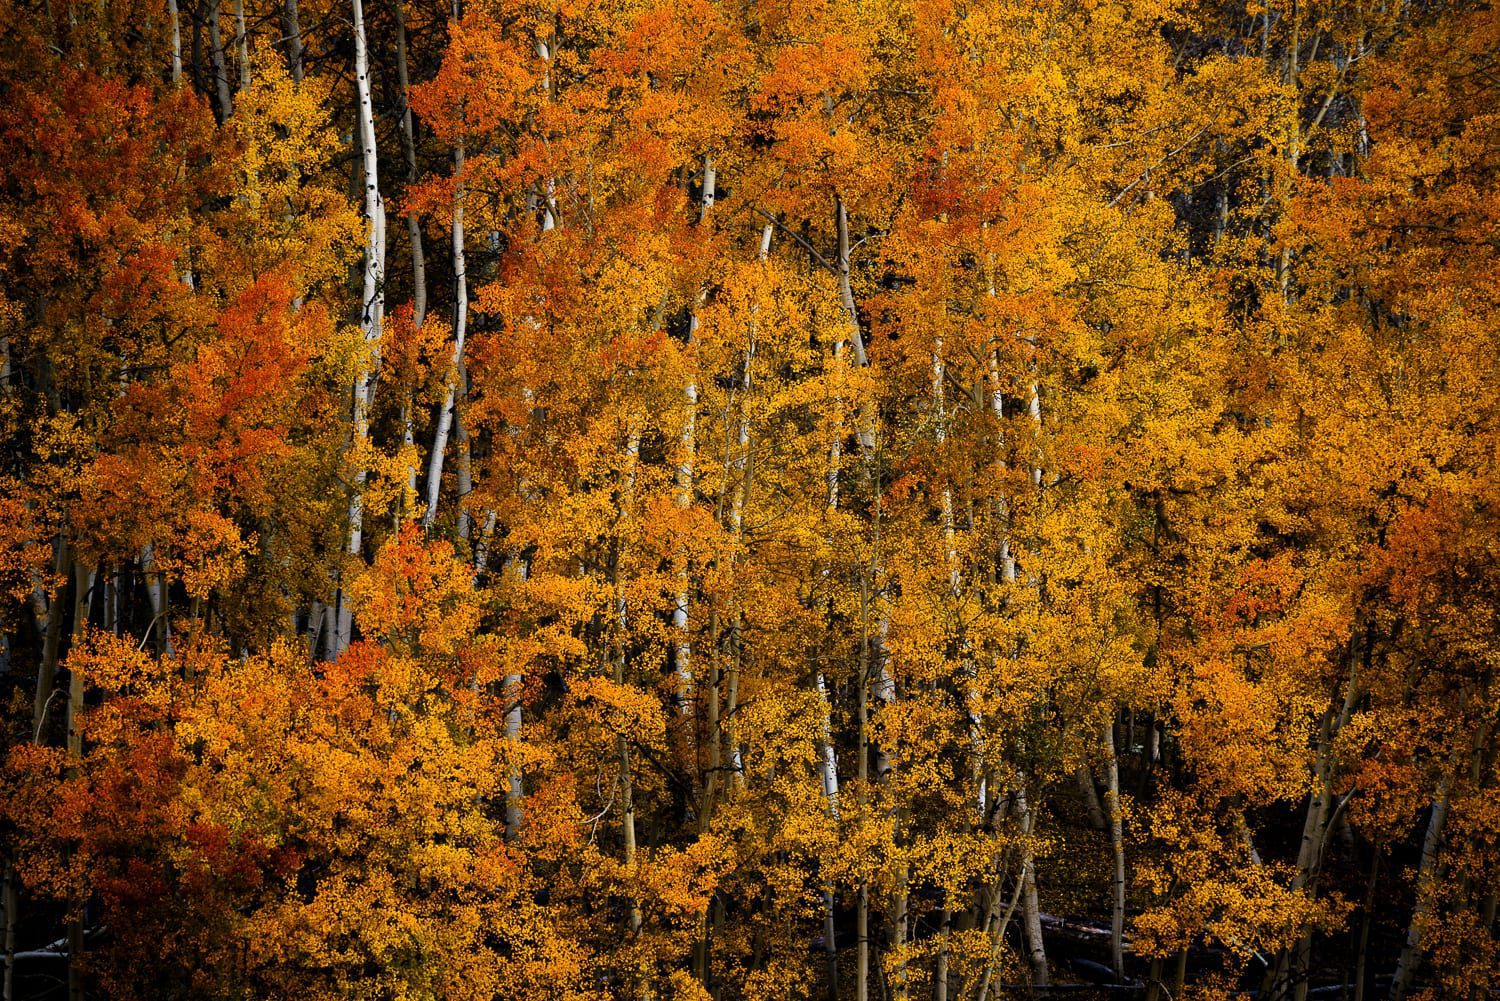 Close image of orange aspen trees